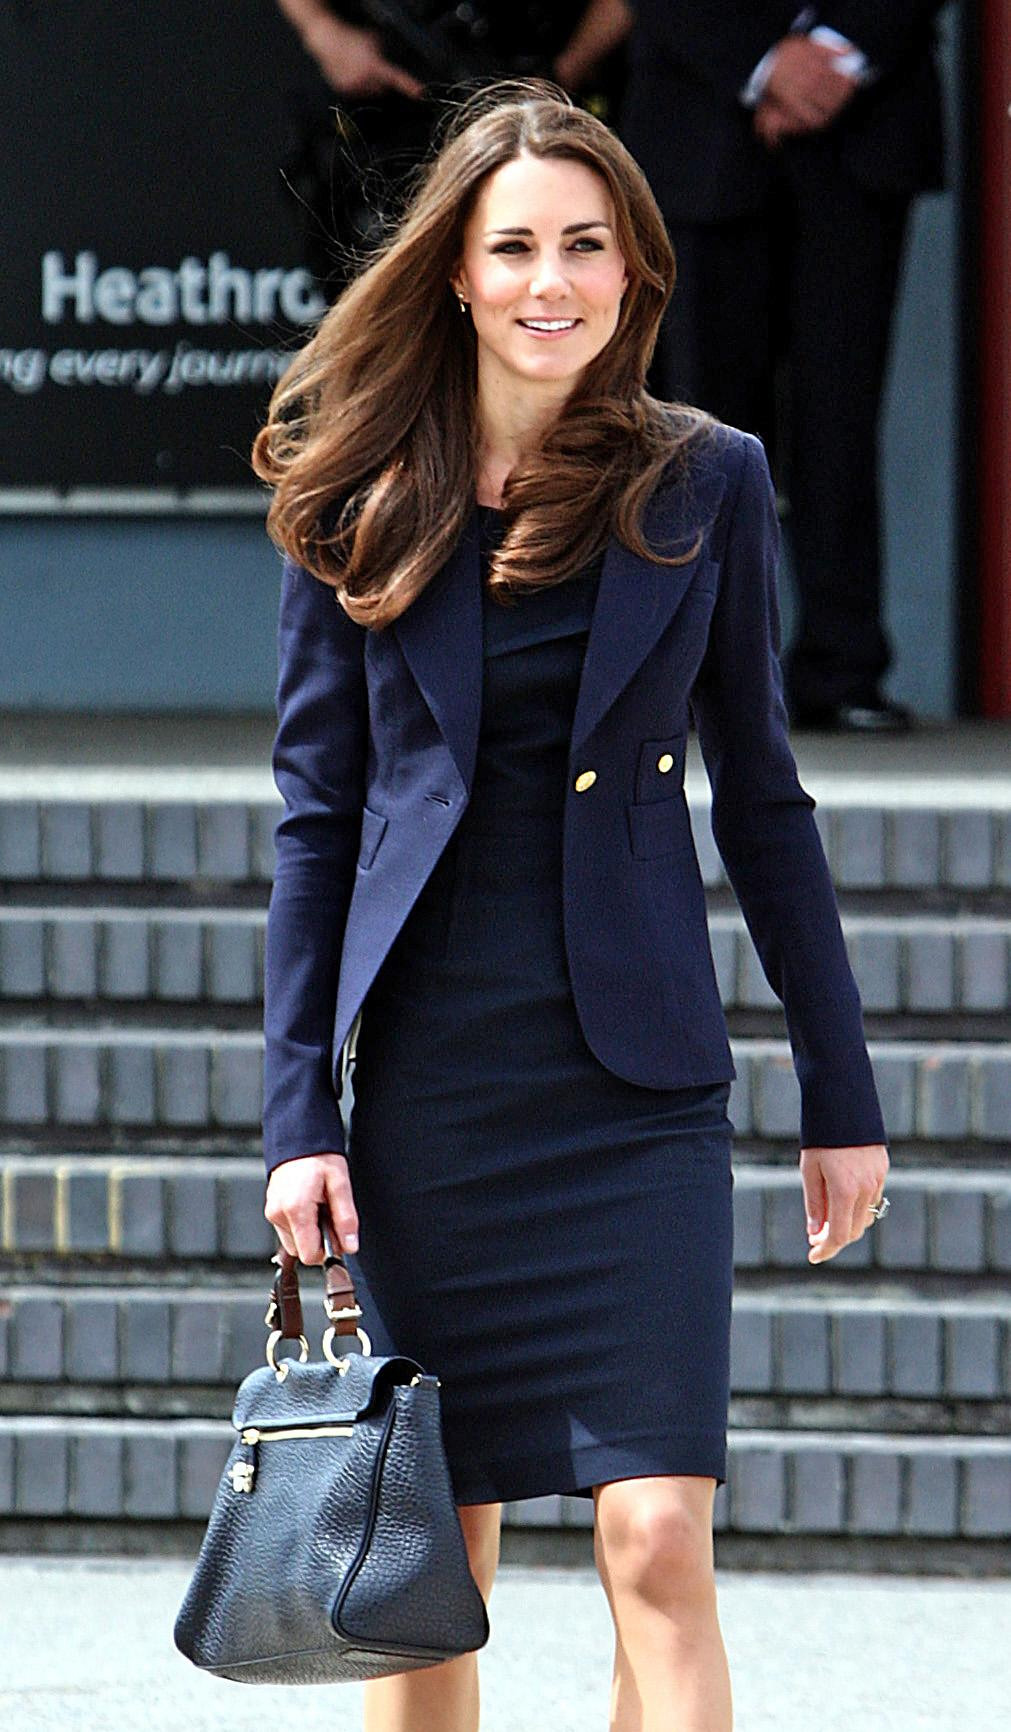 <strong>Heading to Heathrow</strong>                                   On June 30, 2011, the Duchess departed London in a navy blue ensemble that included a Roland Mouret shift, Smythe blazer and Mulberry bag. The trip marked her first international travel as a royal.